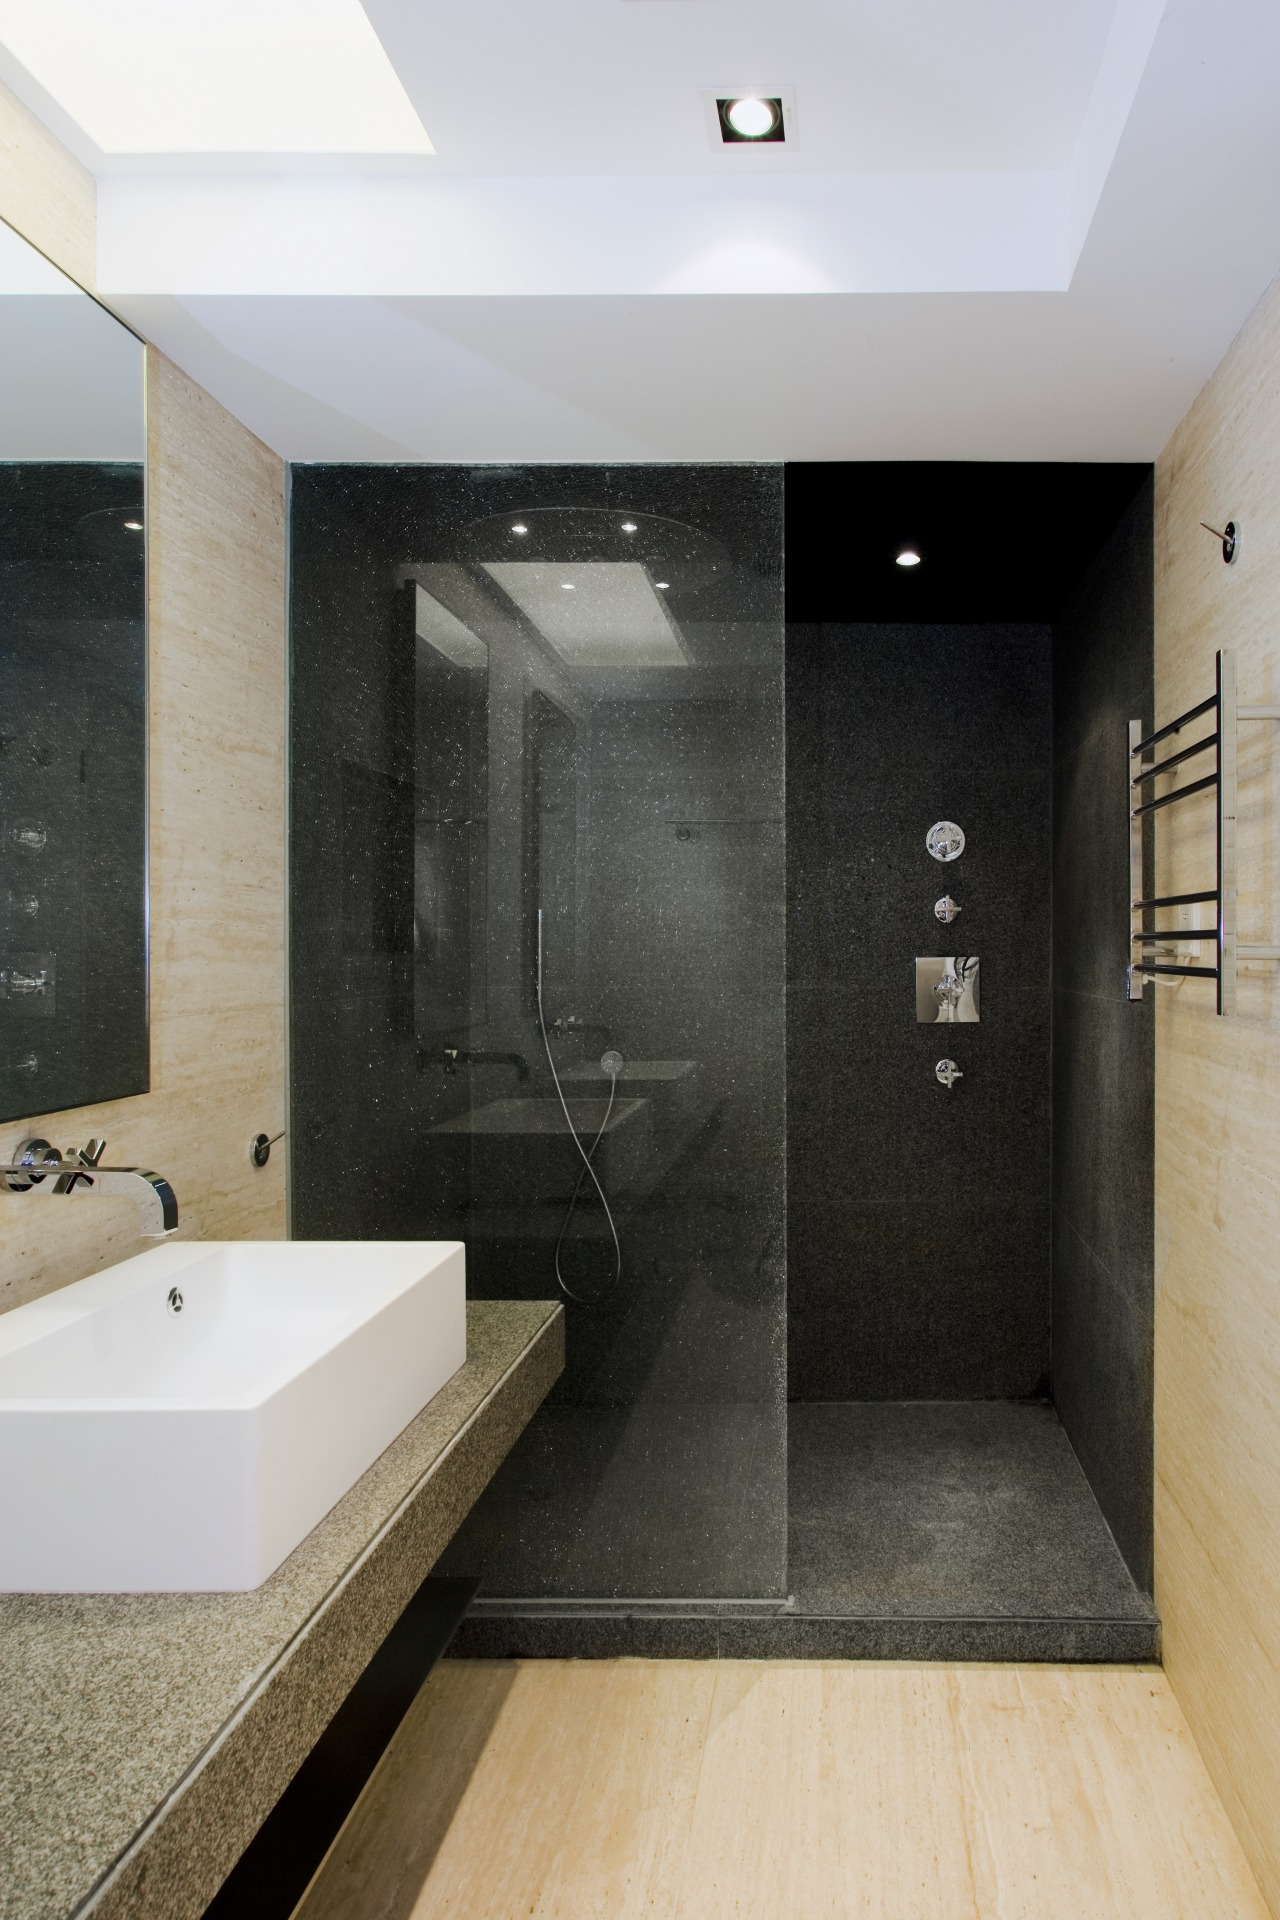 view of bathroom featuring wall and floor tiling, architecture, bathroom, floor, flooring, interior design, room, tile, black